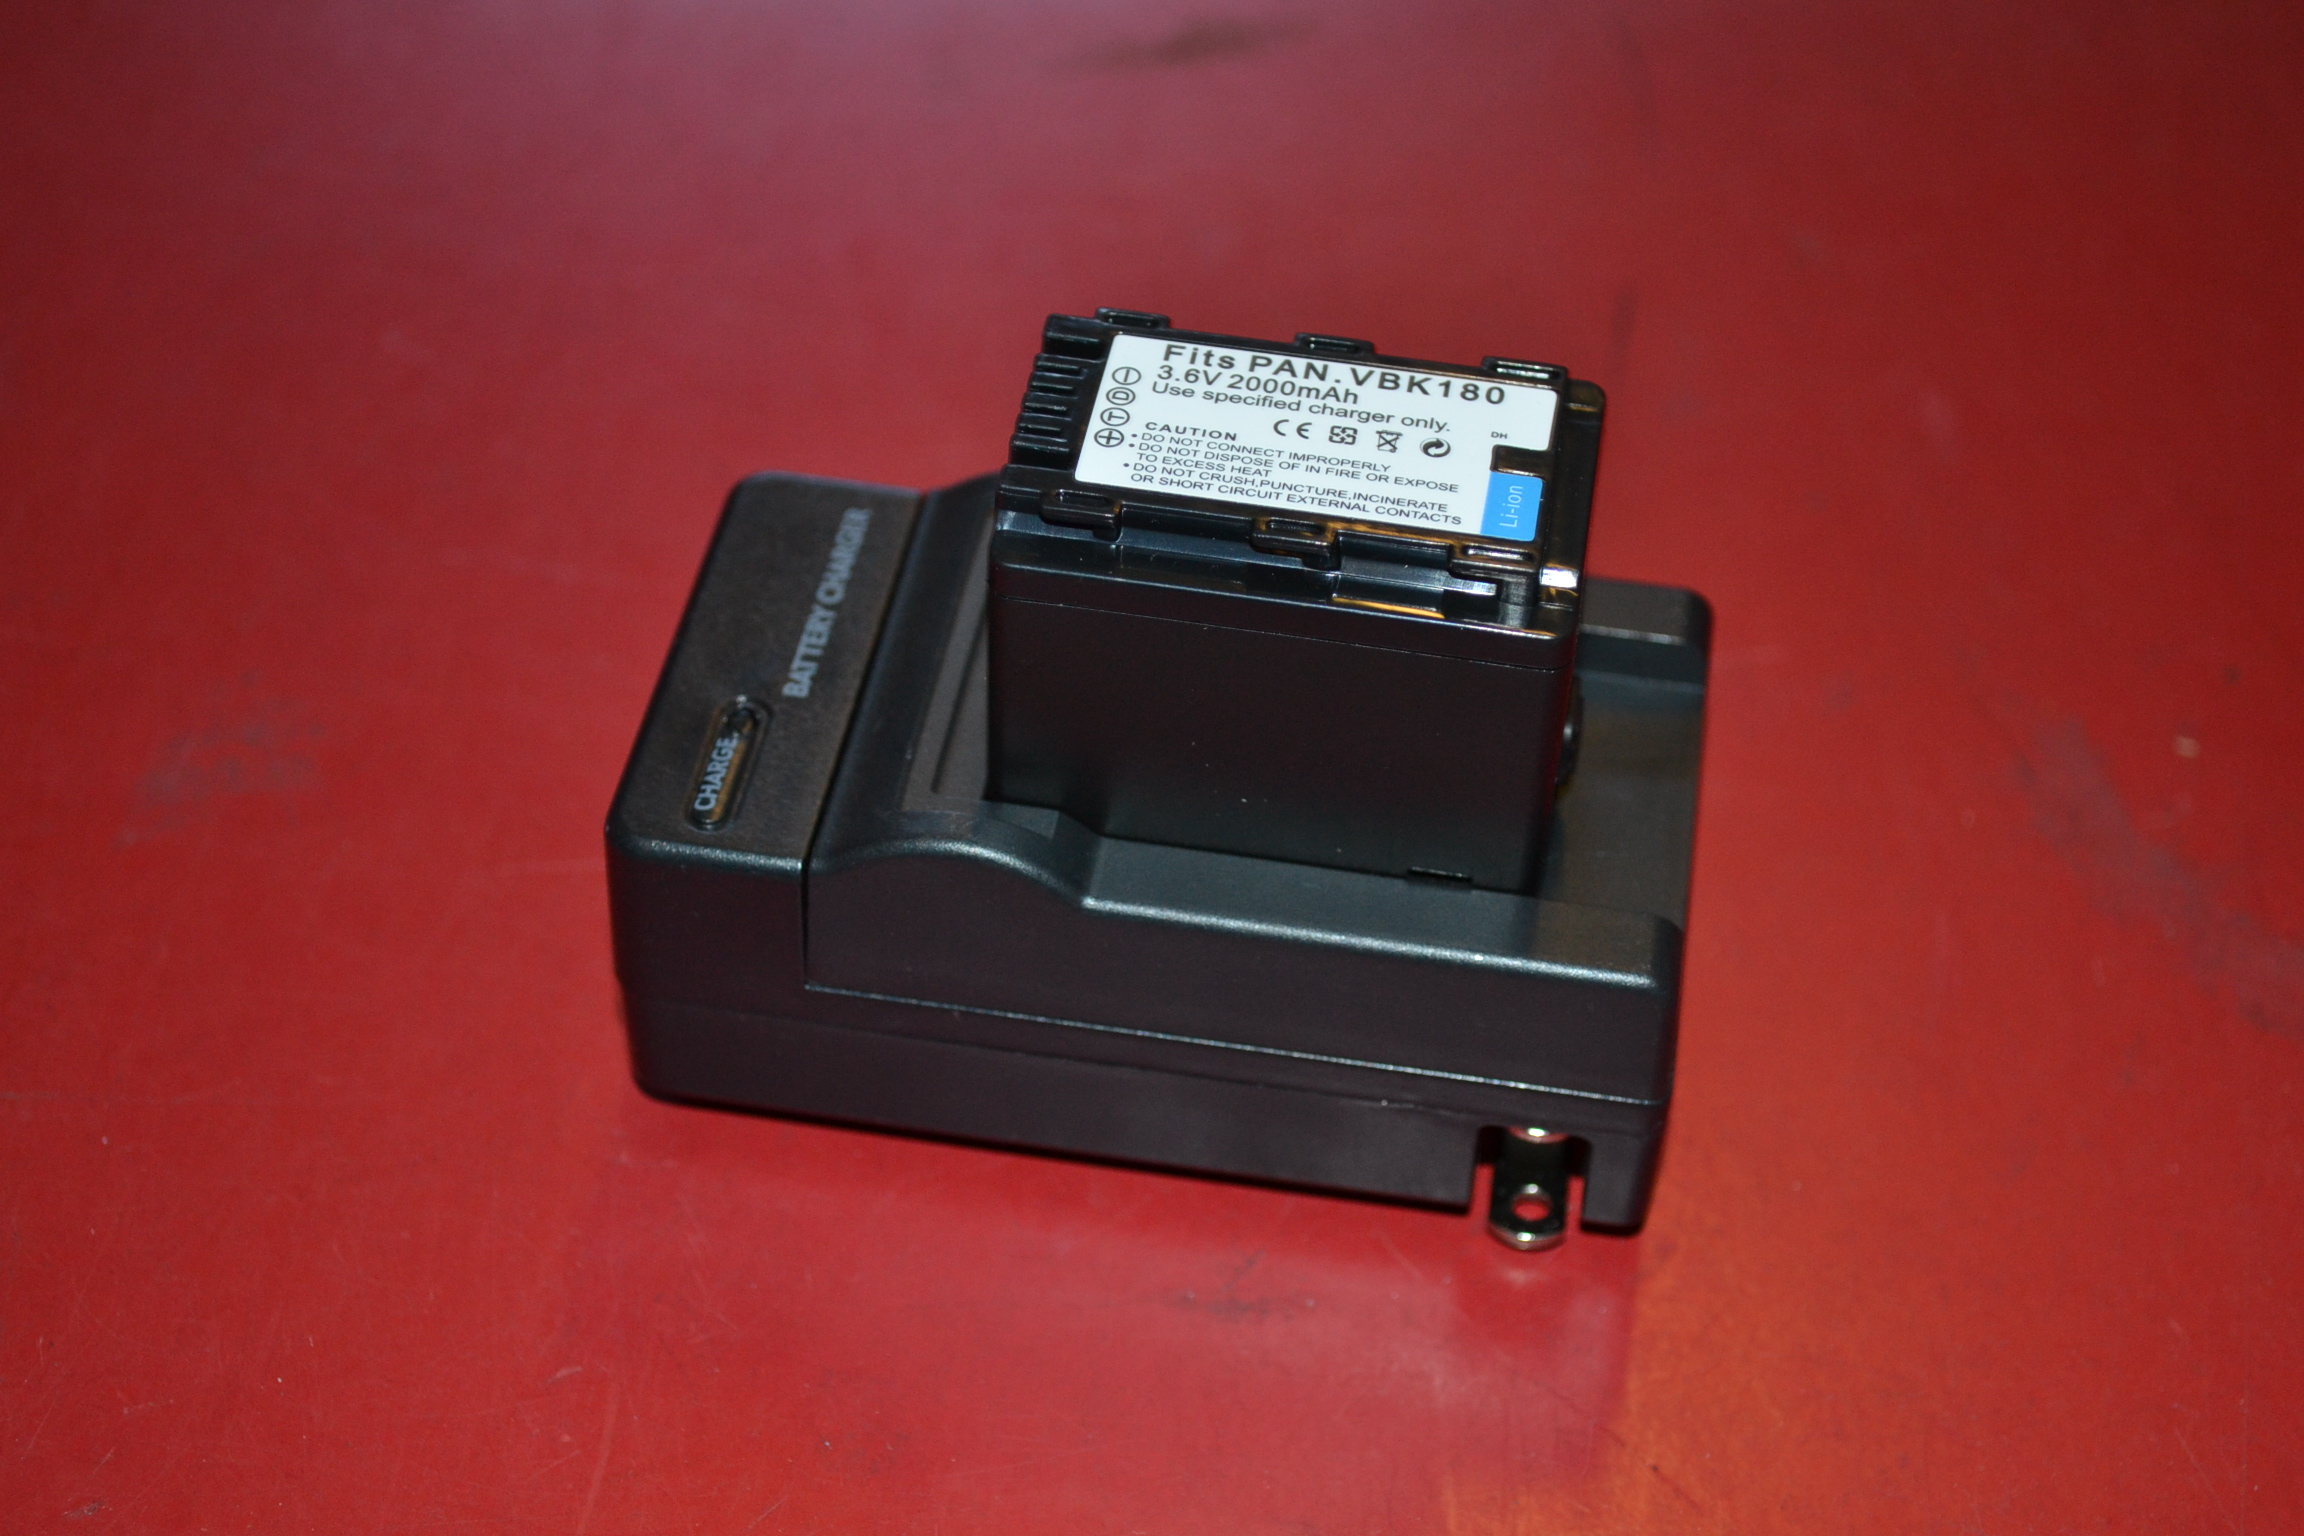 Camera Battery Charger Cradle For Panasonic Vbk 180T Lithium Battery